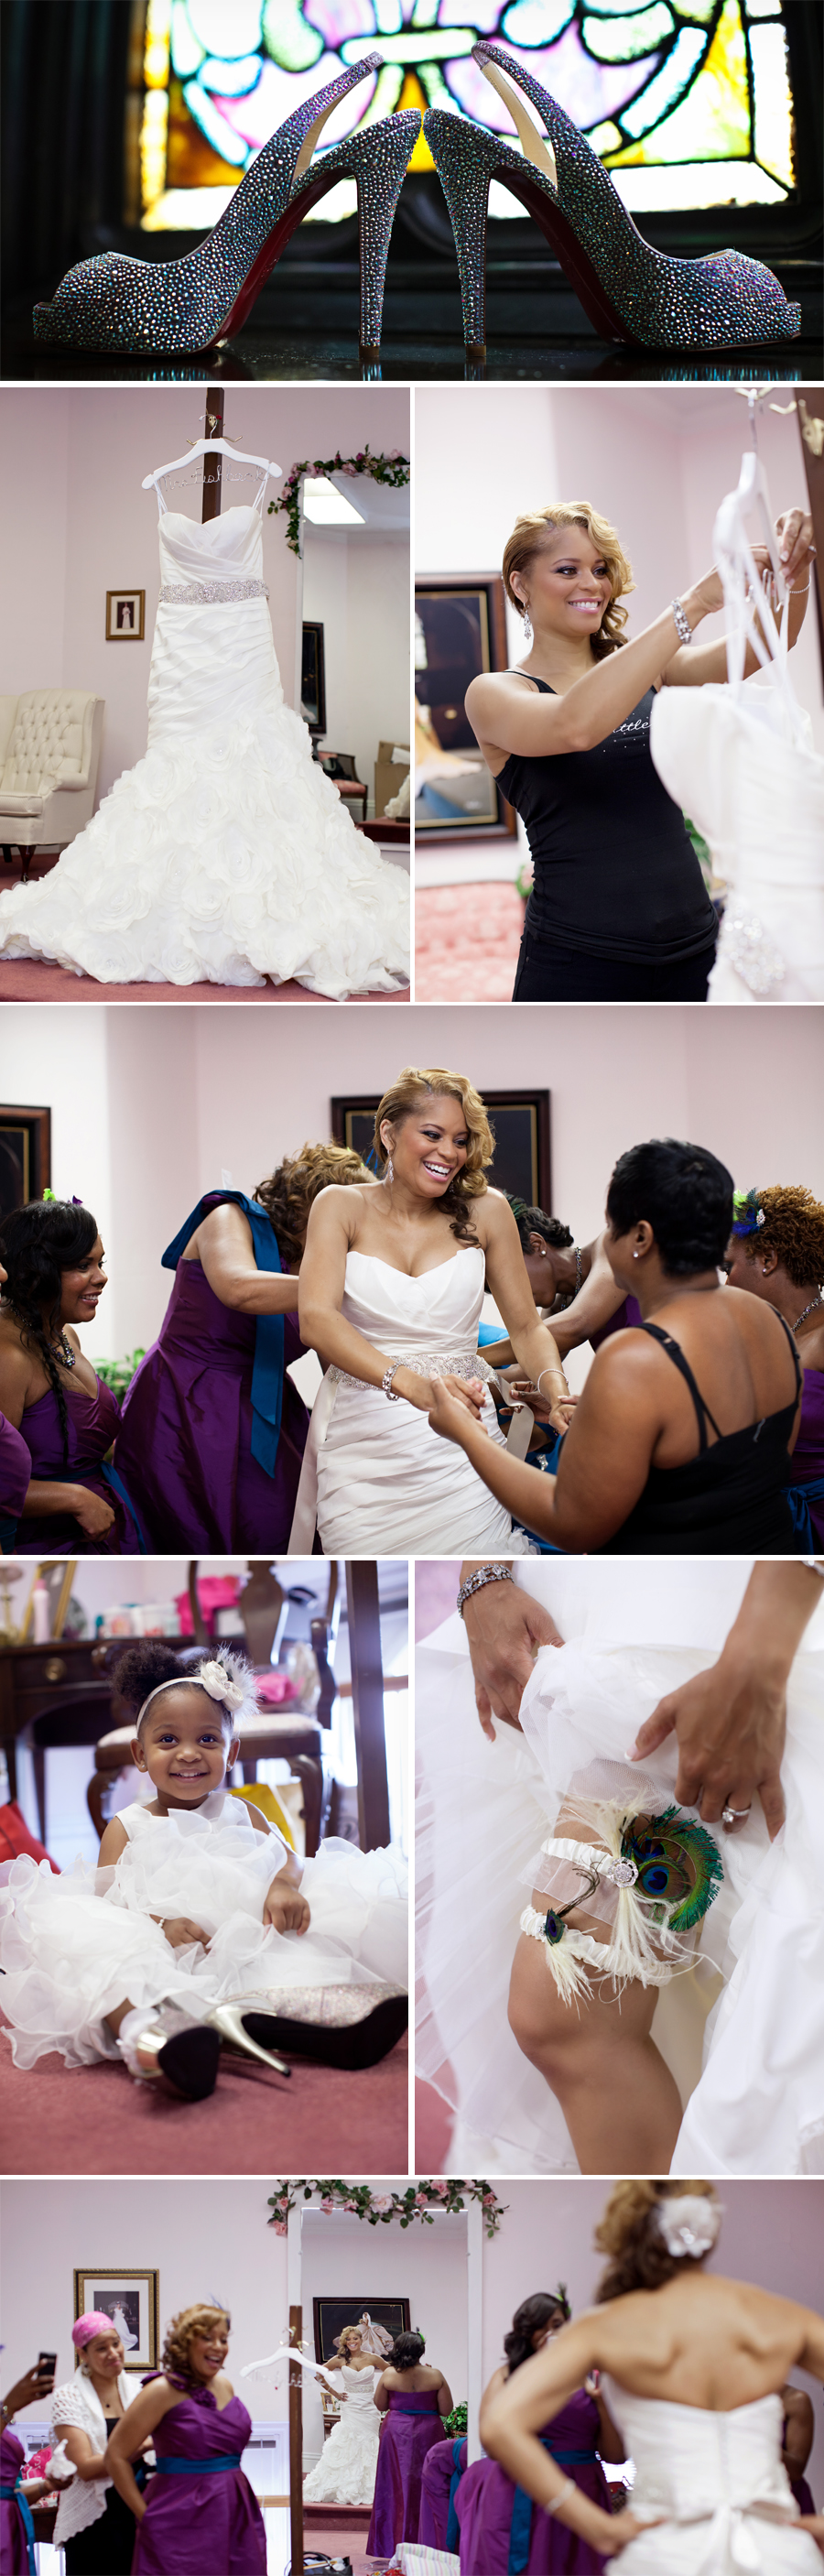 Charlene was actually more excited about her gorgeous Jimmy Choos shoes than her wedding dress. Both were beautiful, but the shoes were stunning!! Great choice.